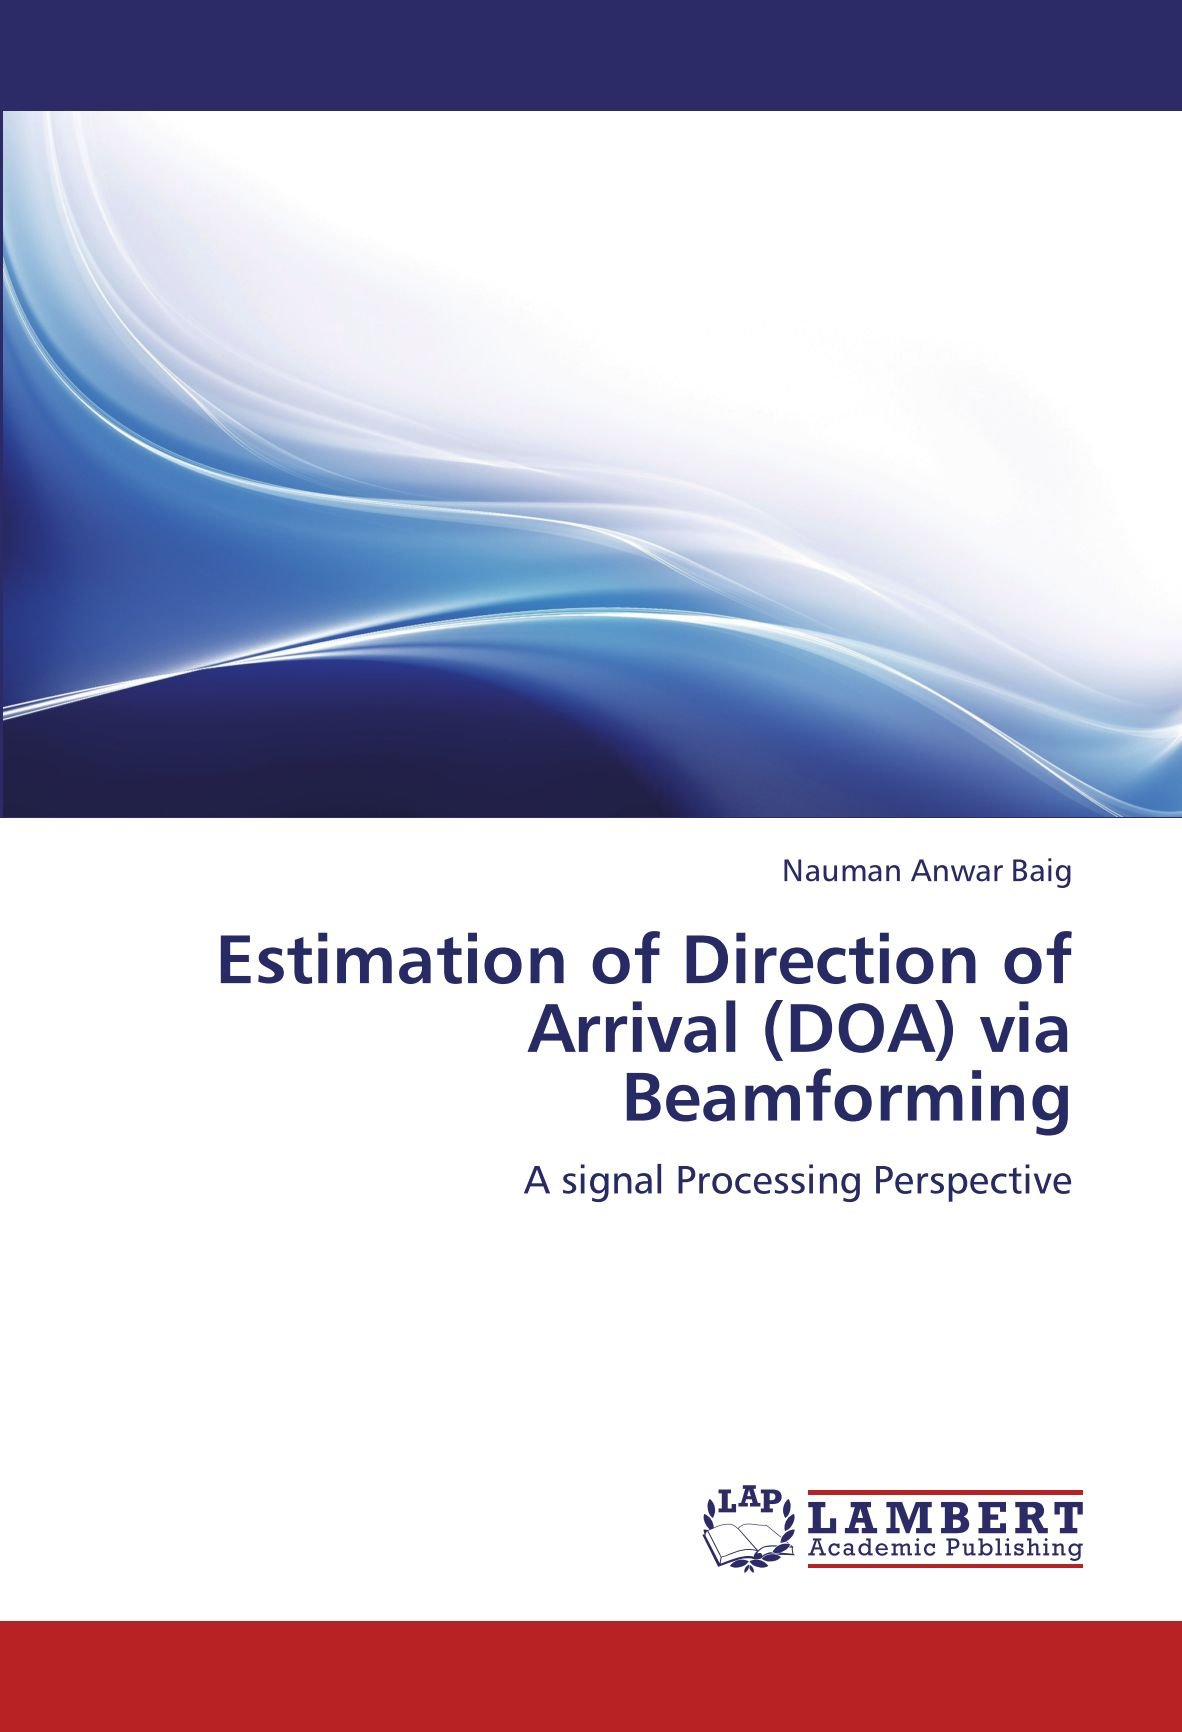 Estimation of Direction of Arrival (DOA) via Beamforming: A